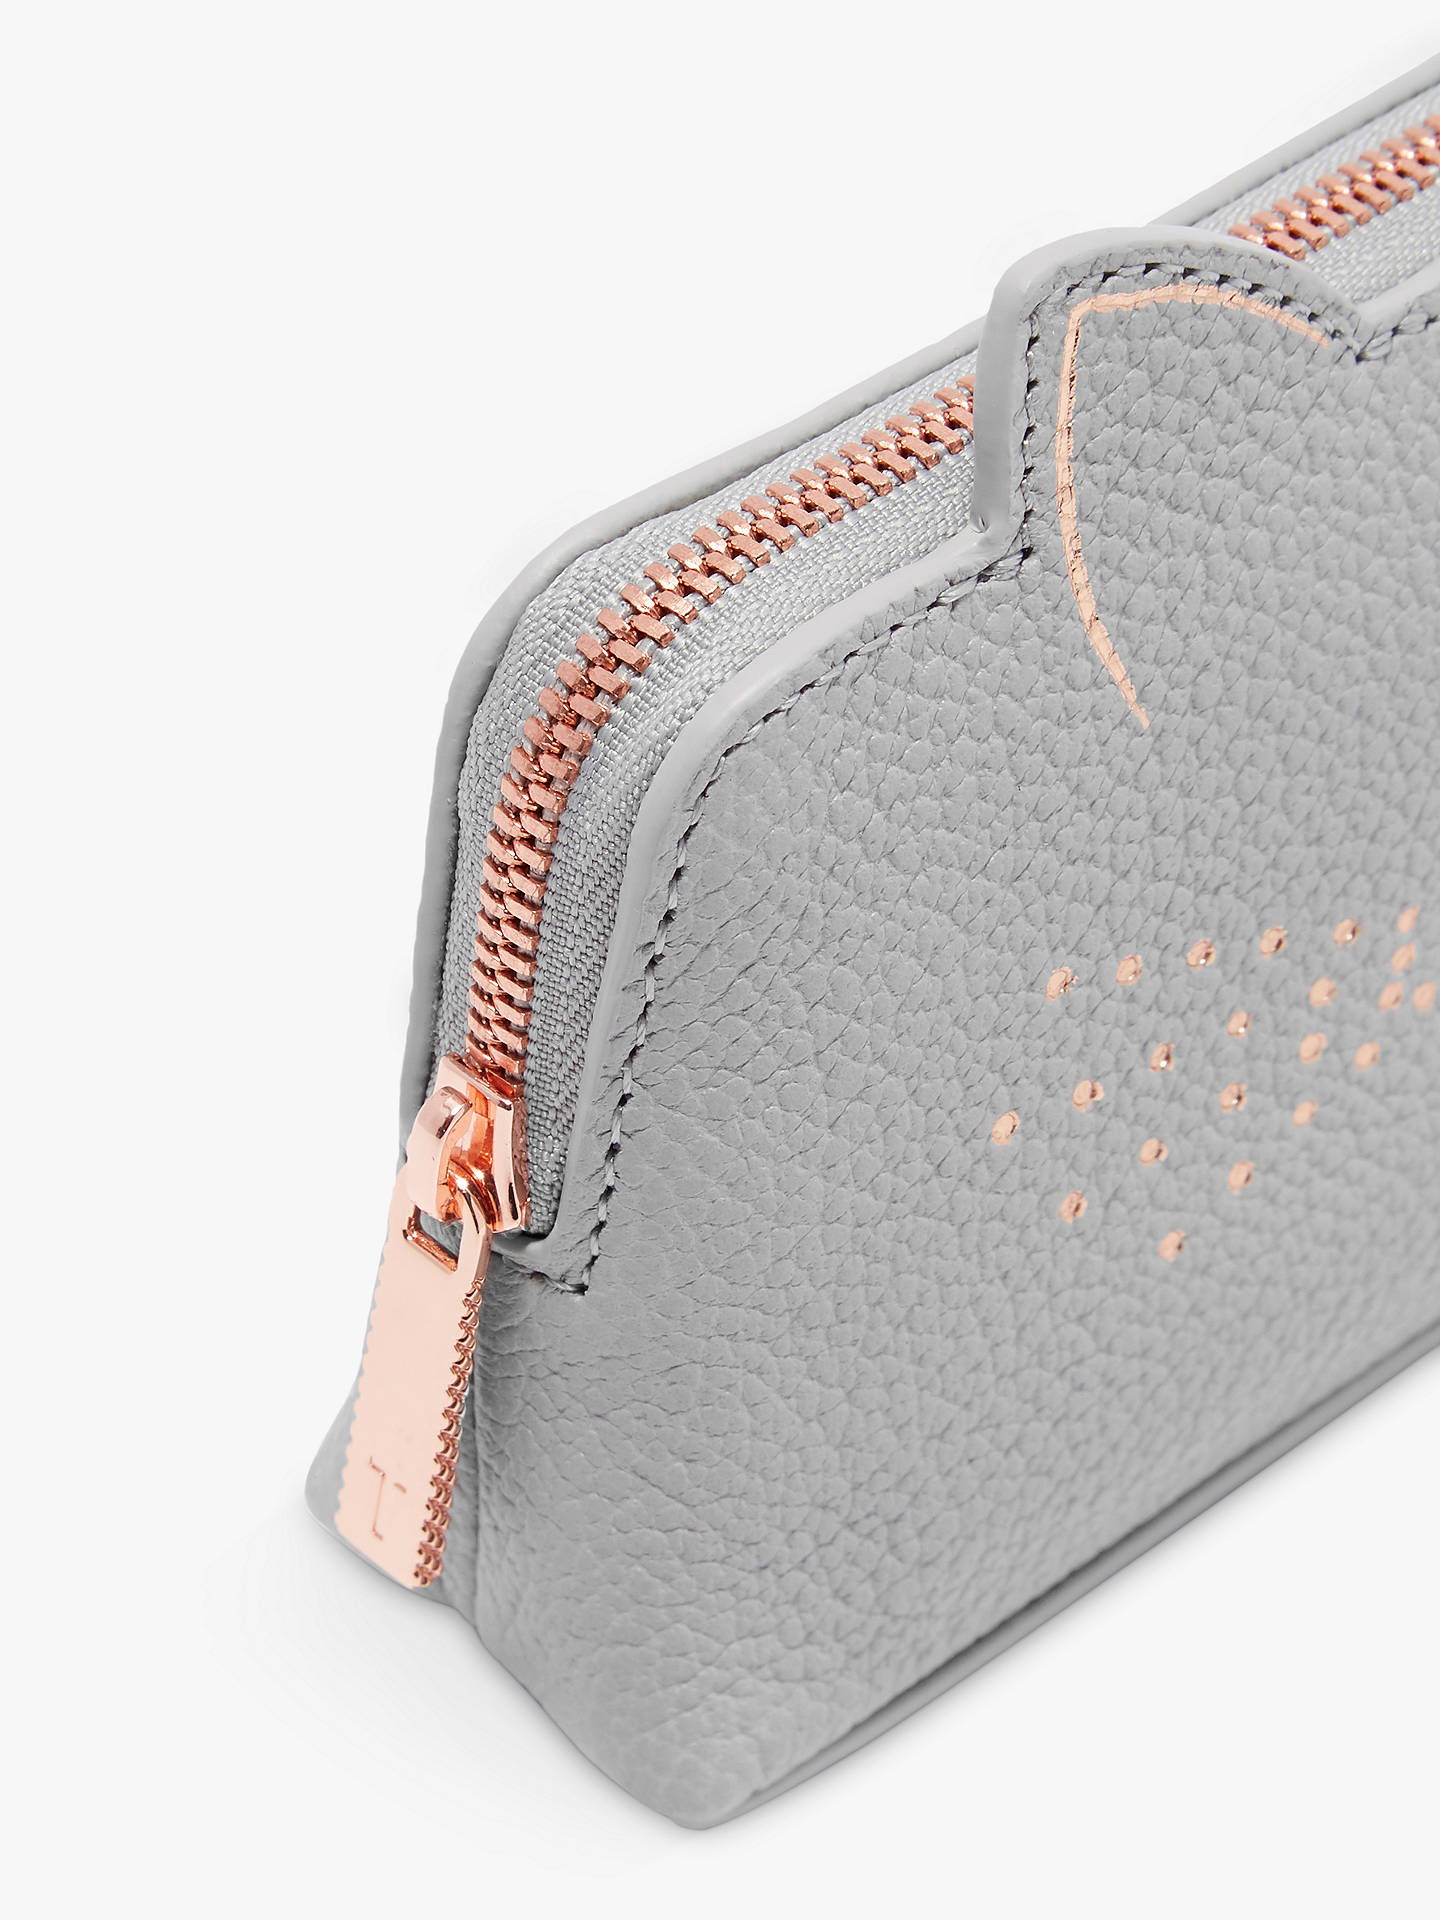 BuyTed Baker Oohan Cat Whiskers Leather Make Up Bag, Mid Grey Online at johnlewis.com